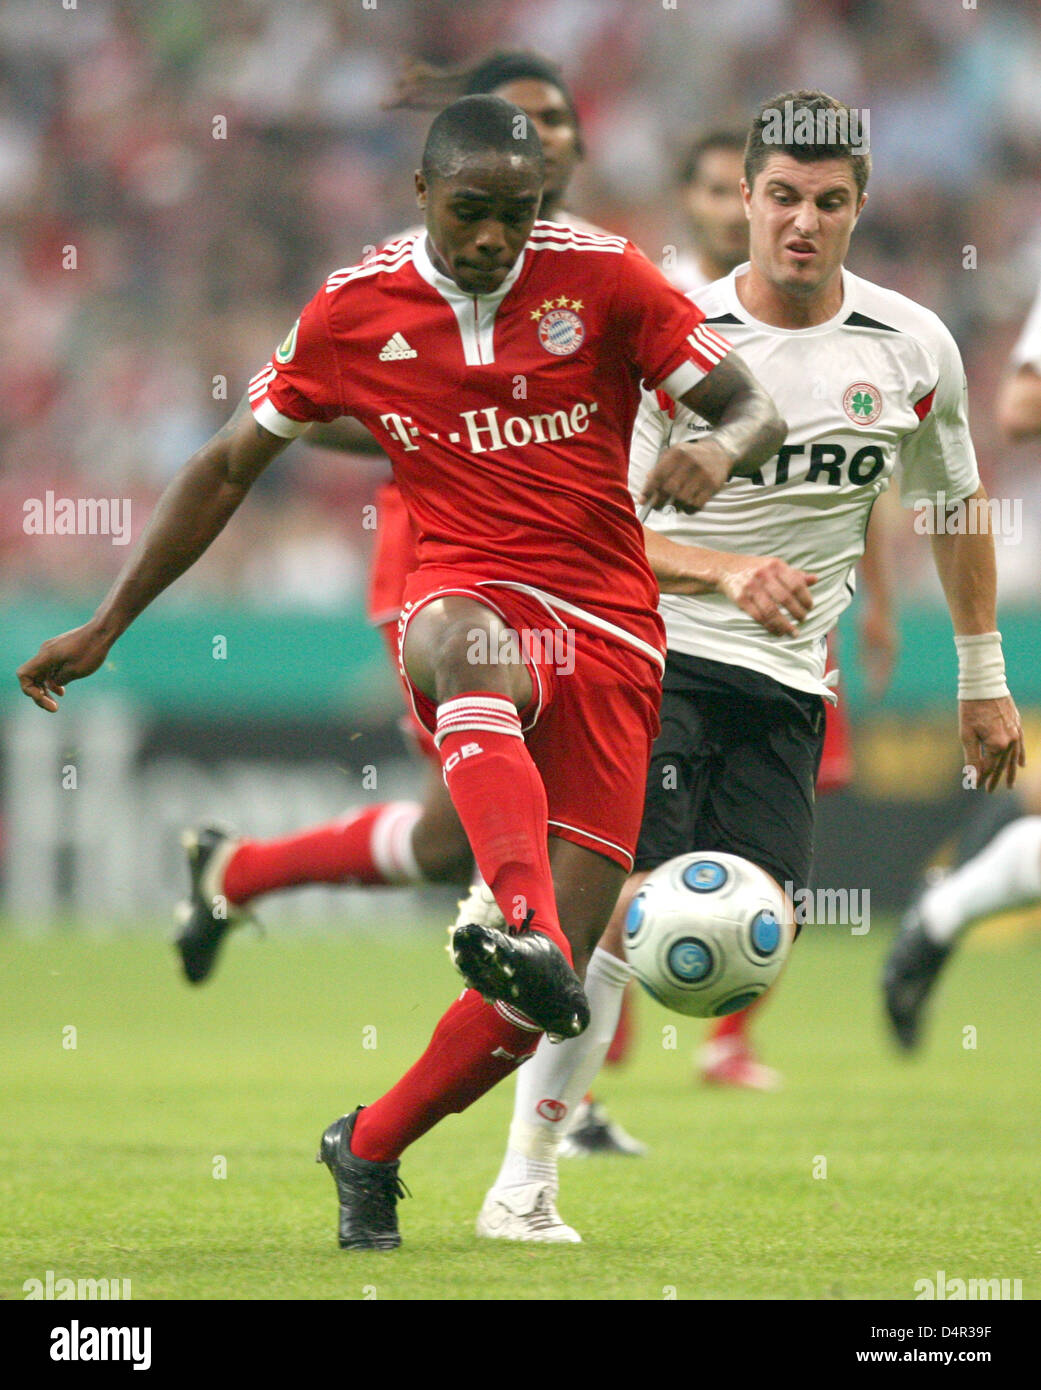 Munich?s Edson Braafheid (L) fights for the ball with Oberhausen?s Moritz Stoppelkamp during the German DFB Cup - Stock Image